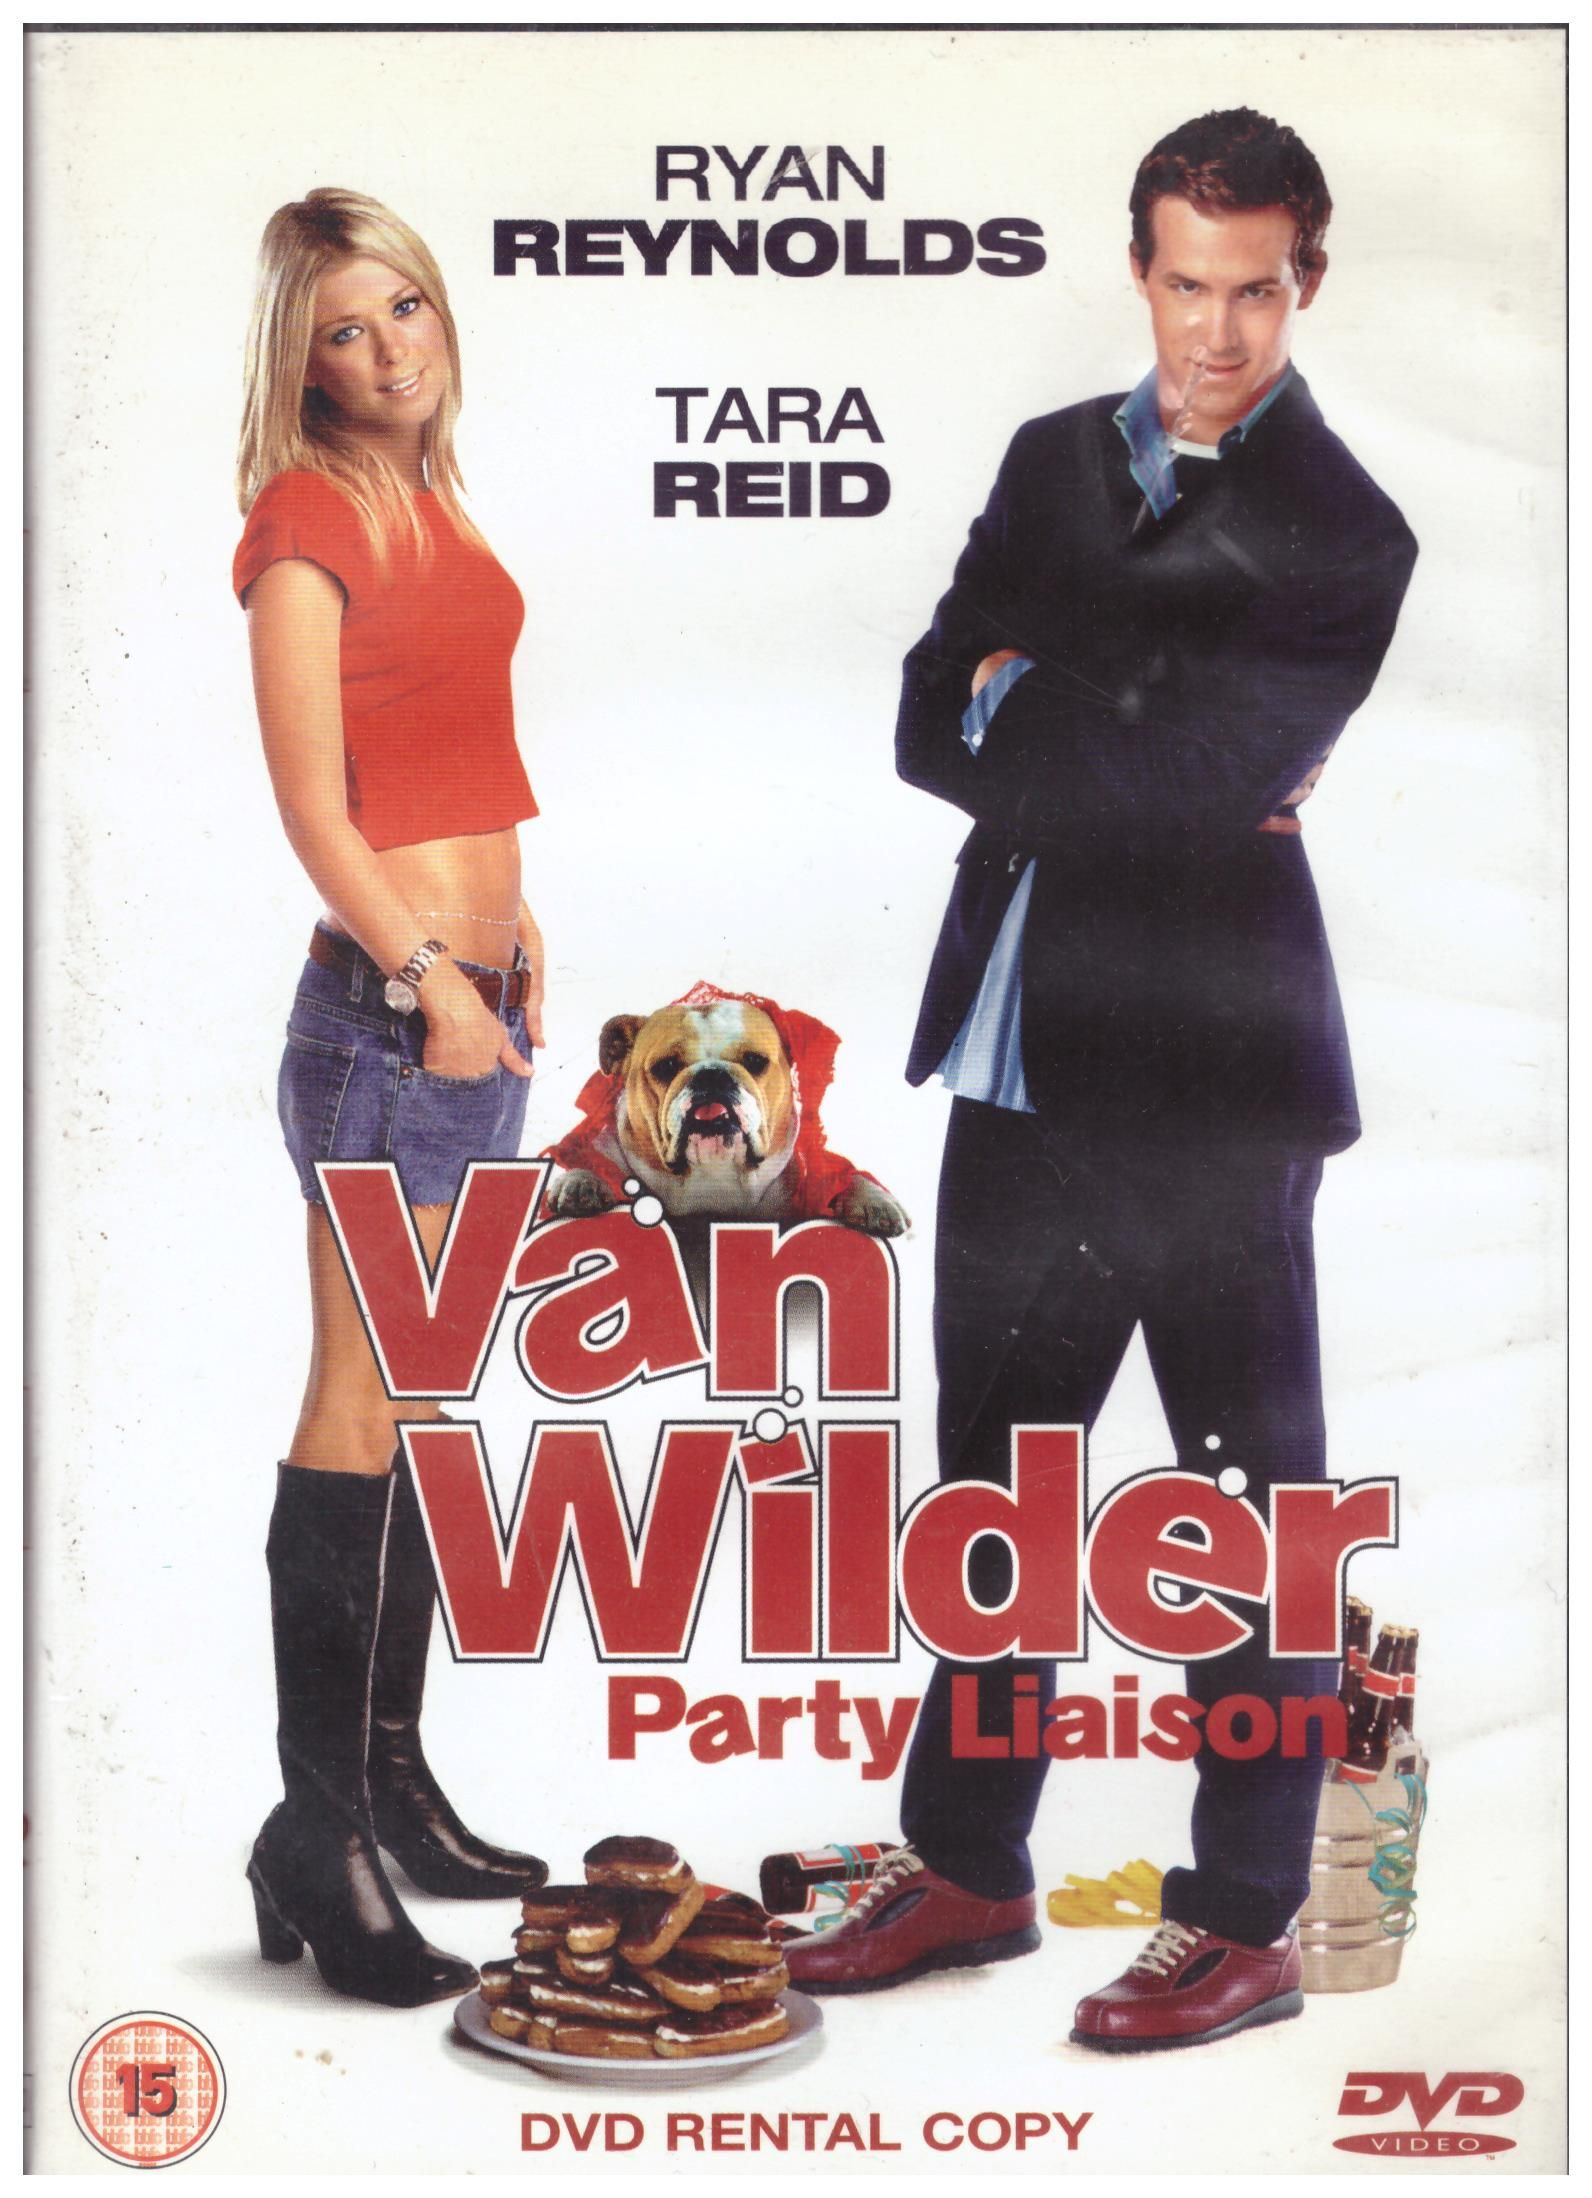 Van Wilder Party Liaison On Dvd From Momentum Pictures Mp203bld In 2021 Dvd Comedy Films Party